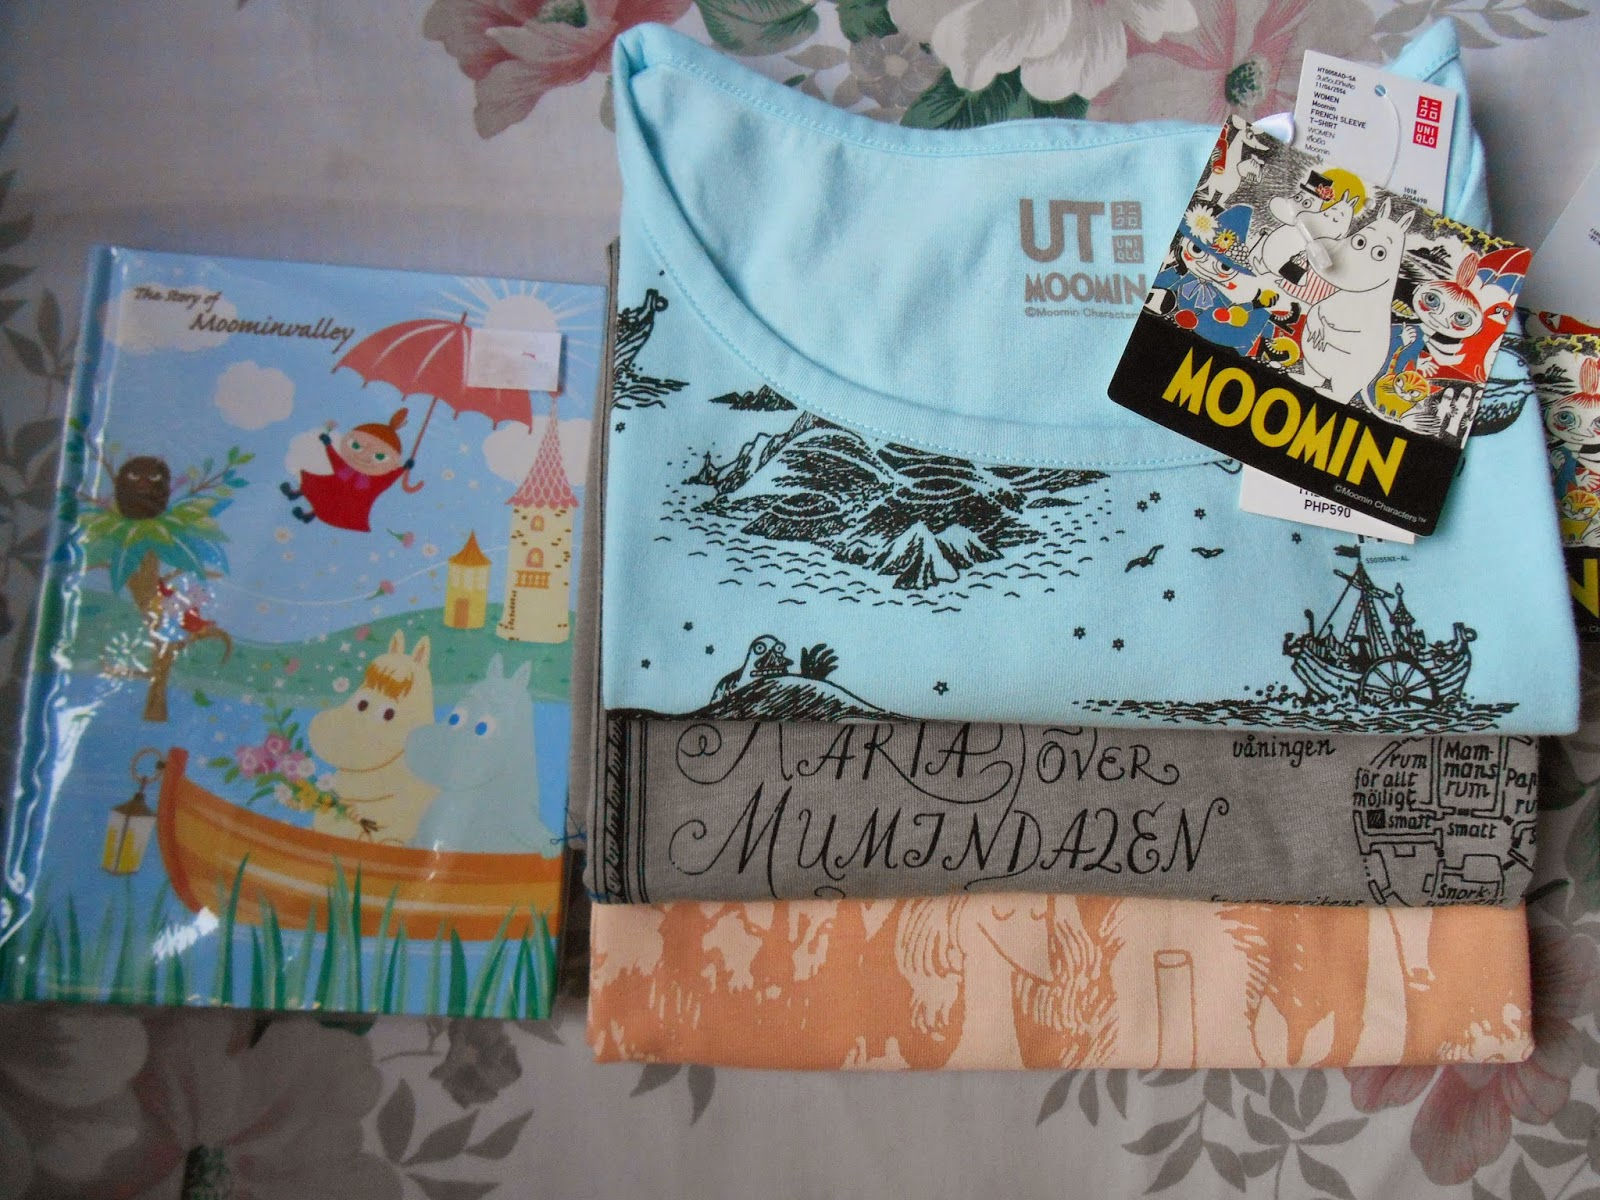 Uniqlo UT Moomin Women's T-shirts and Moomin Diary